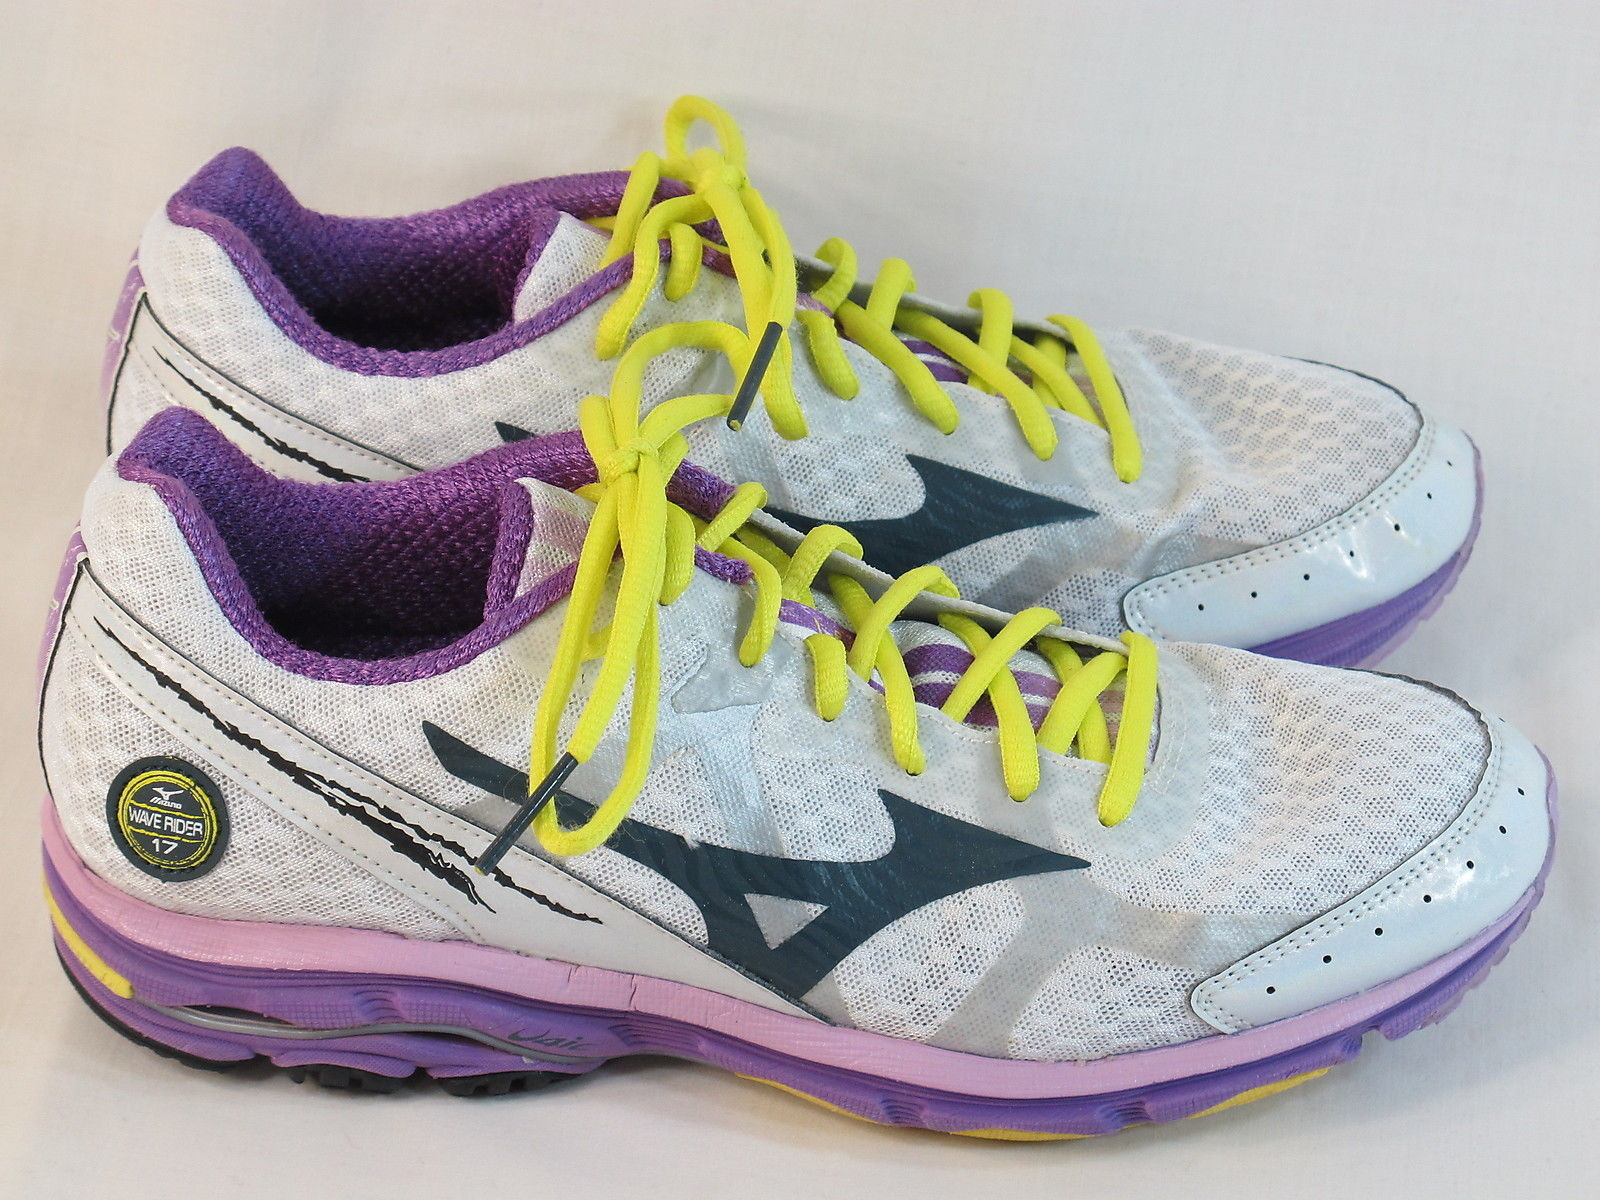 Primary image for Mizuno Wave Rider 17 Running Shoes Women's Size 9 US Excellent Plus Condition